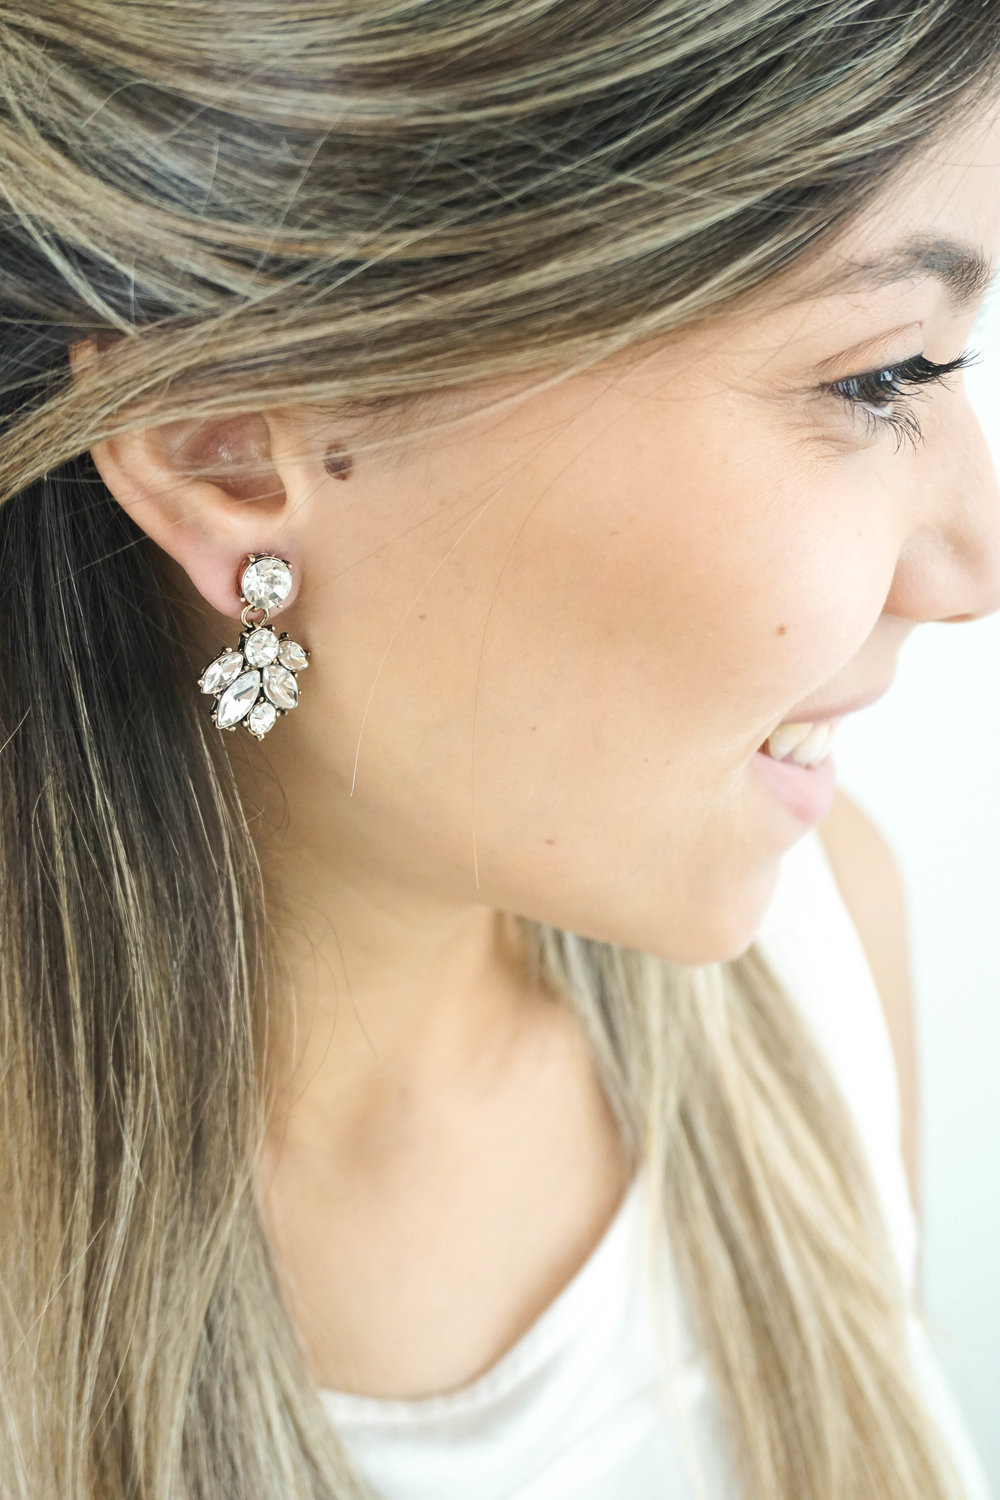 Bridal-Earrings-Photoshoot-with-Wink-of-Pink-Shop-Commercial-Photography-Bridal-Jewelry3.jpg